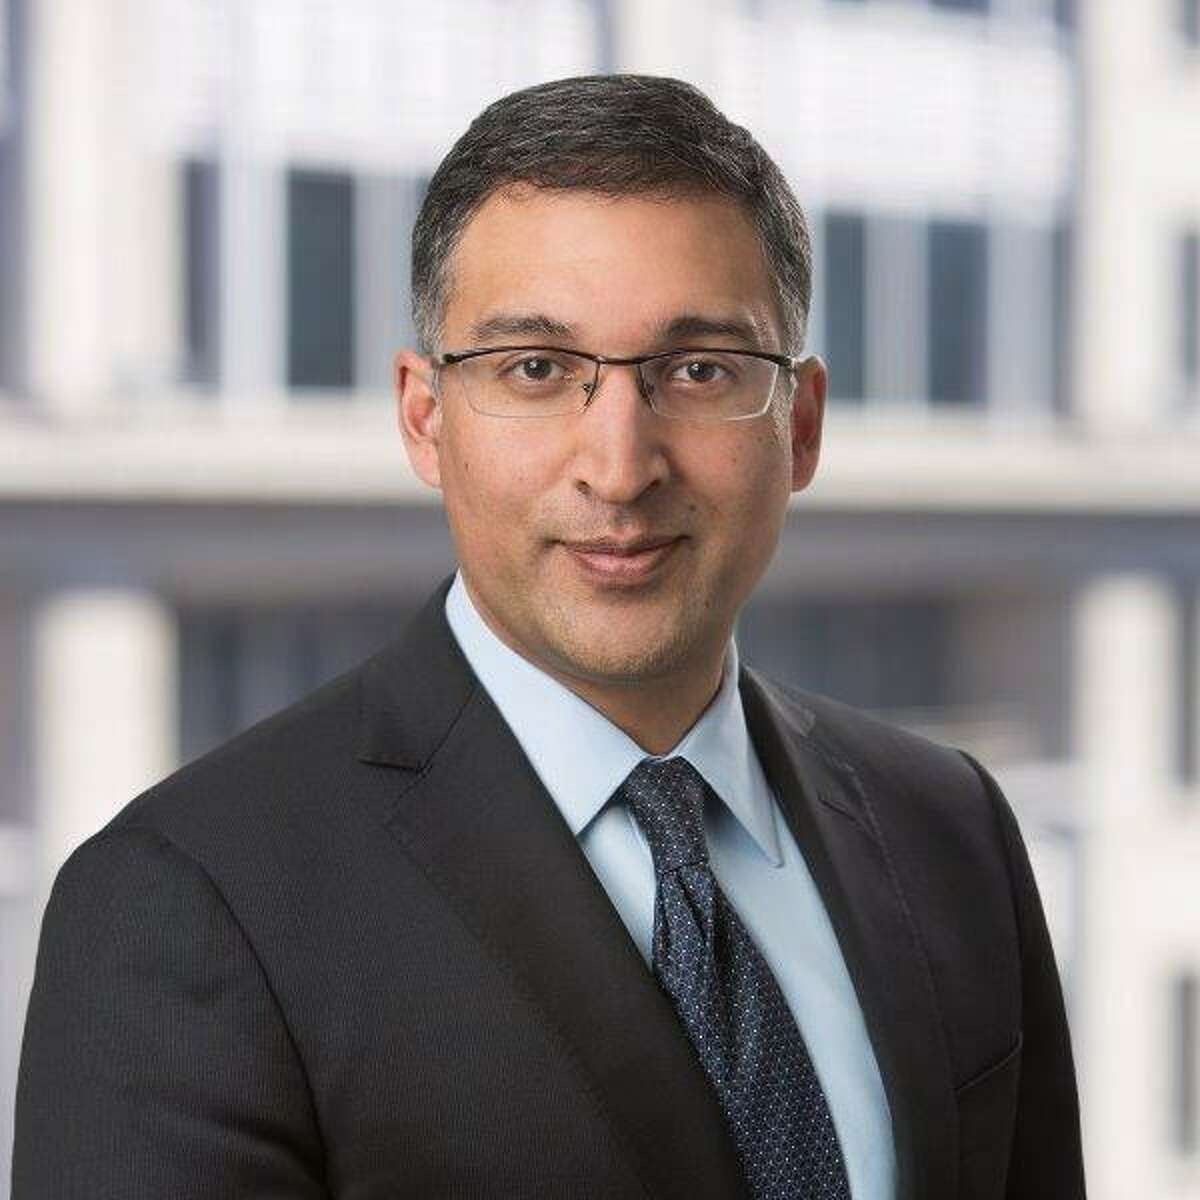 Former Principal Deputy Solicitor General Neal Katyal, a national security law professor at Georgetown University Law Center